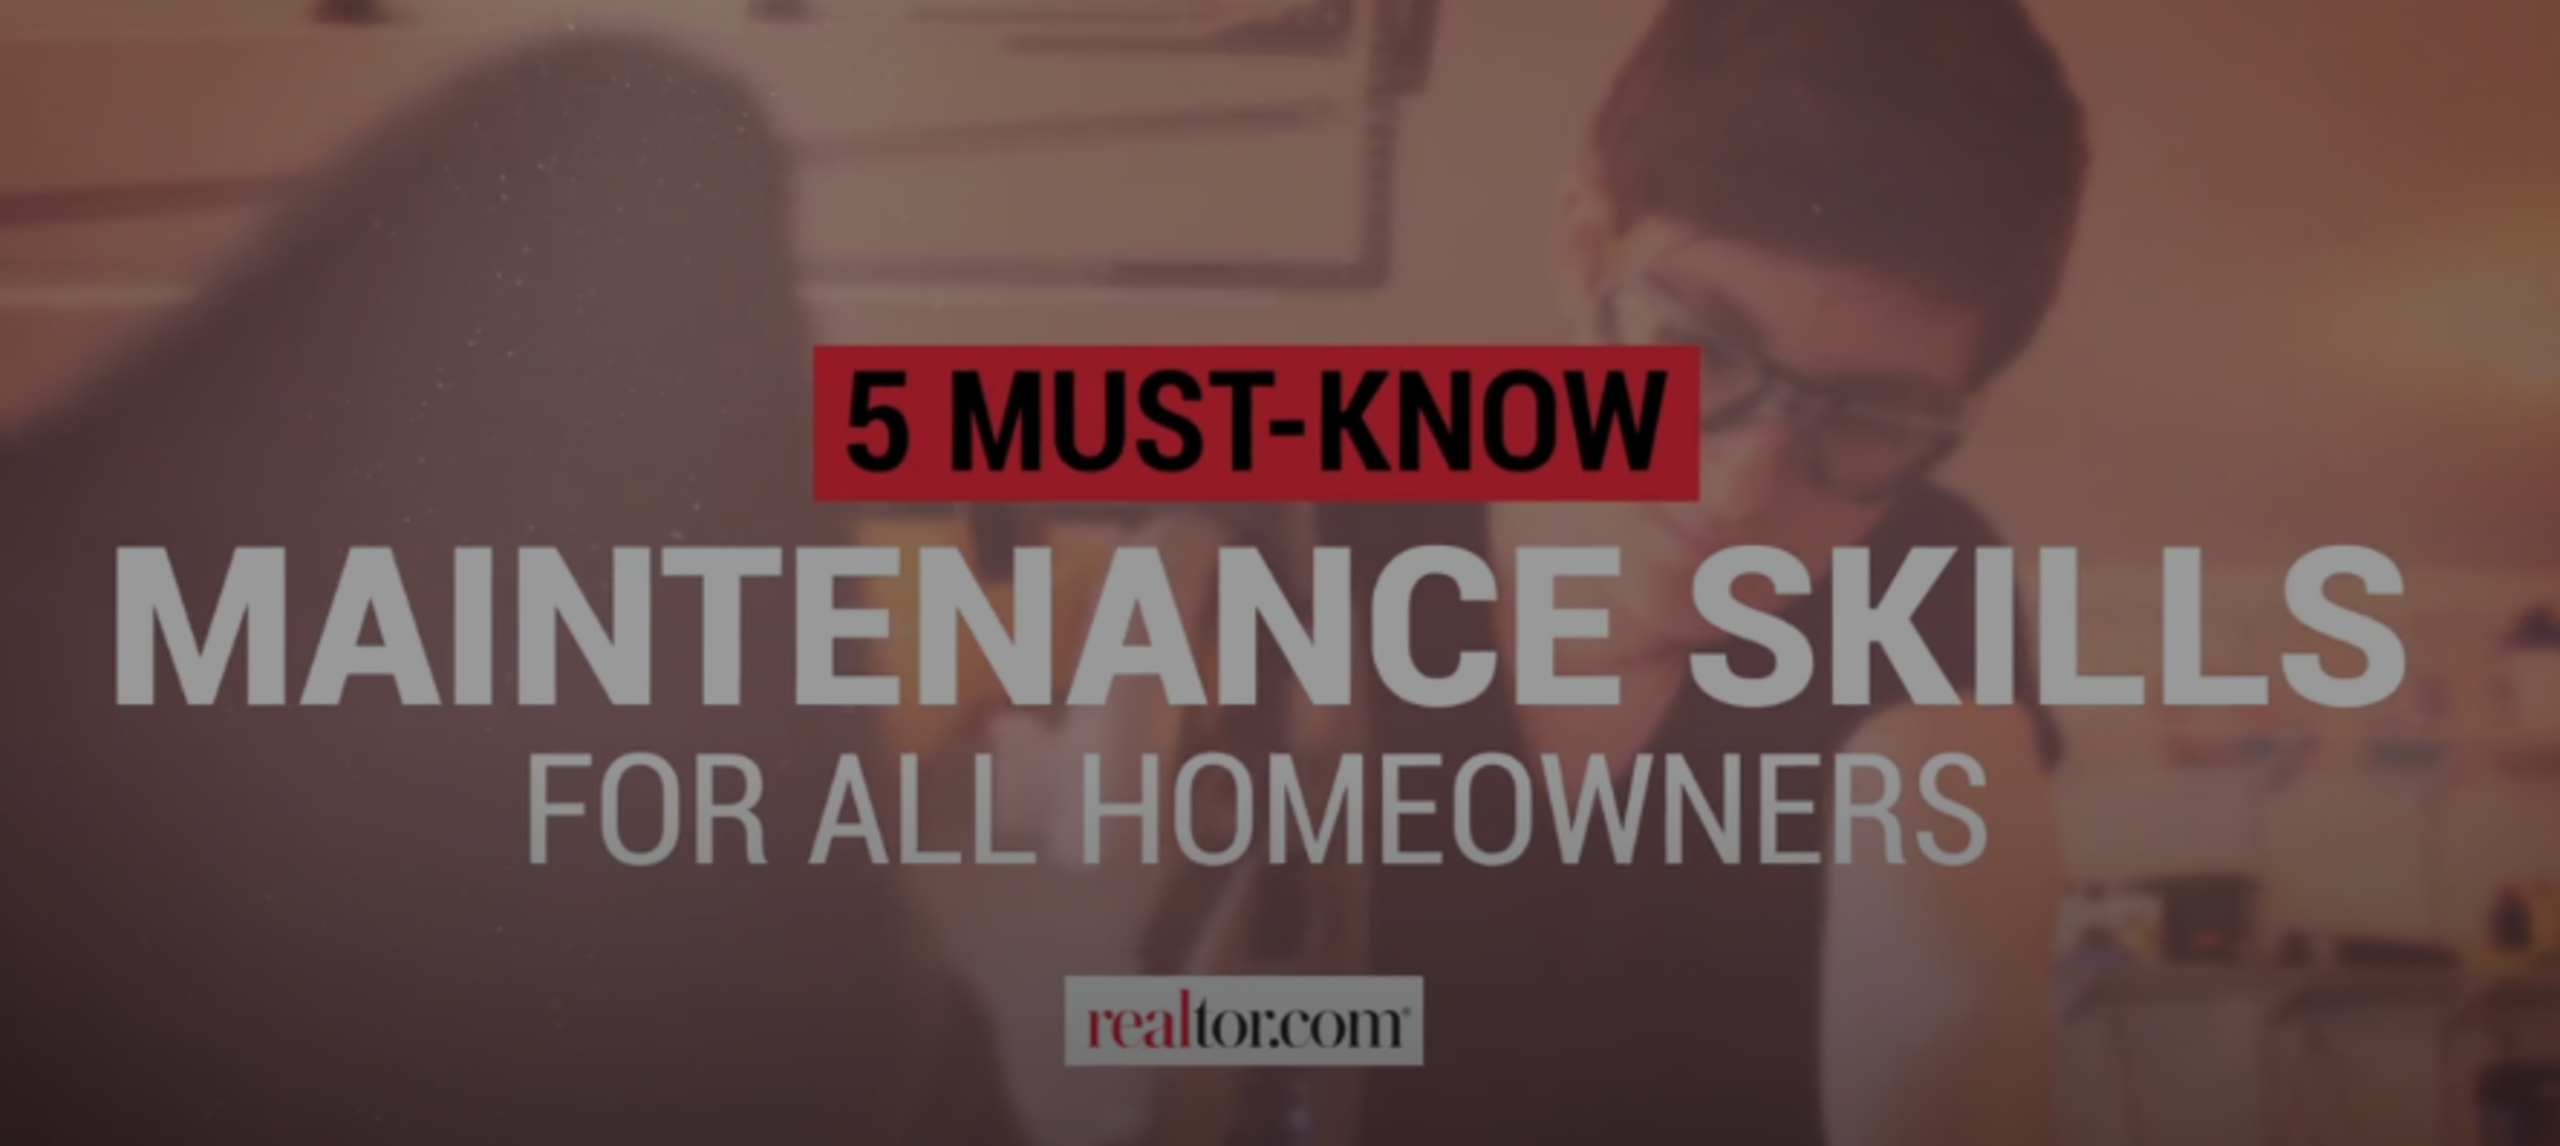 5 Maintenanc Skills all Home Owners Should Know